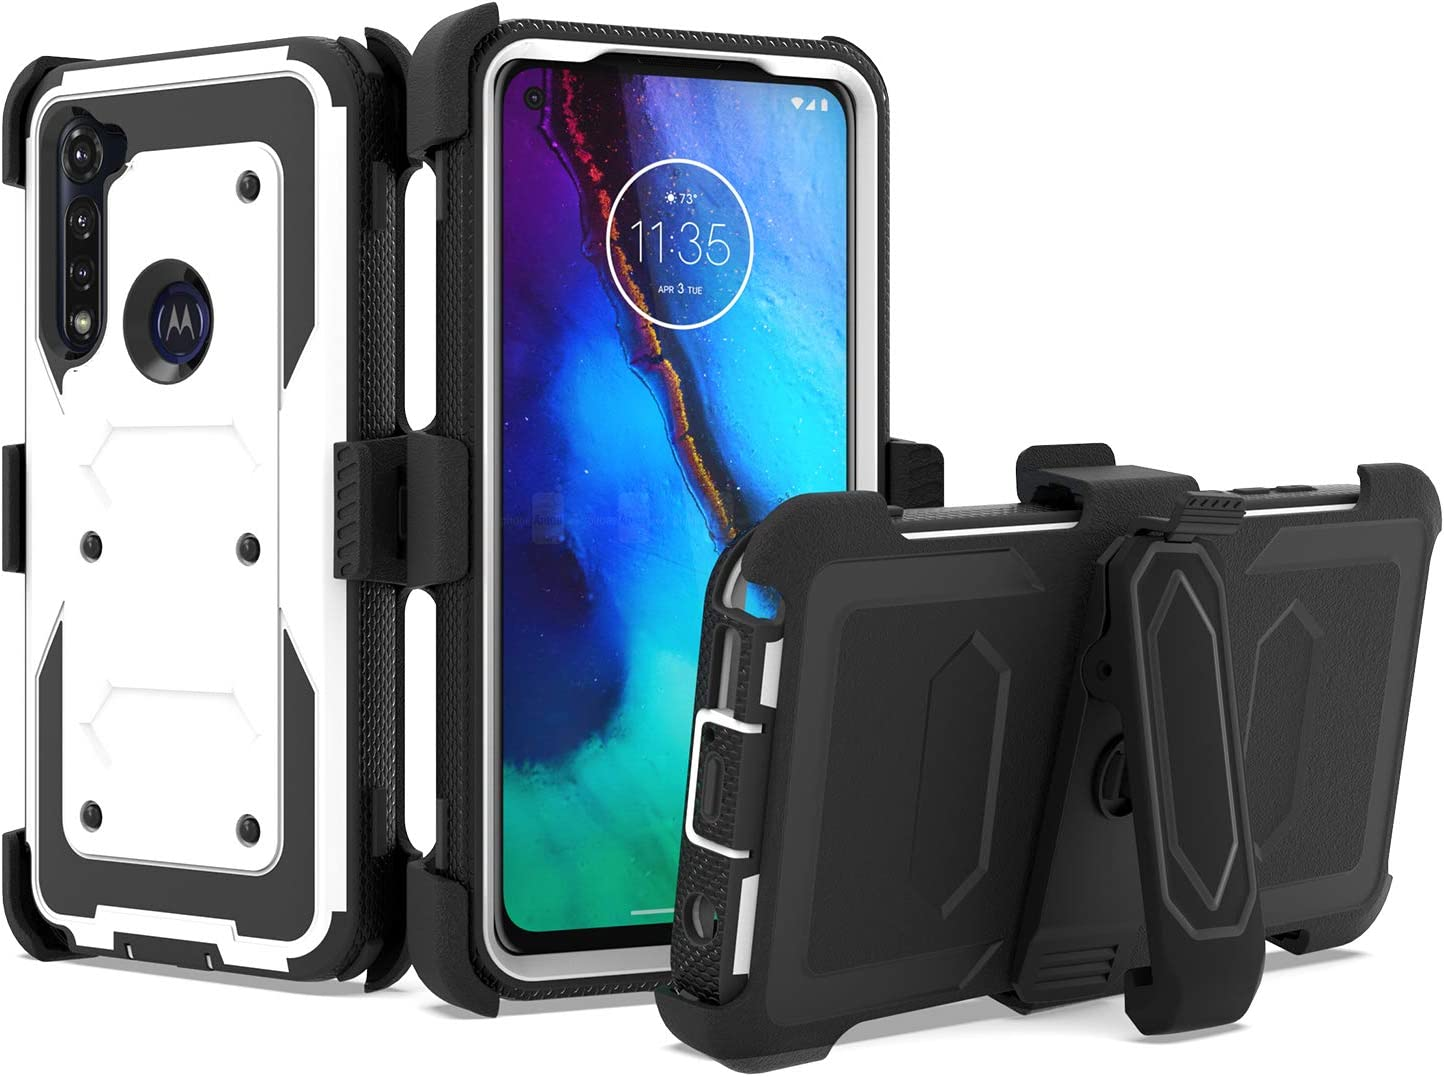 UNC Pro 3 in 1 Belt Clip Holster Cell Phone Case for Motorola Moto G Power 2020, Heavy Duty Shell Hybrid Shockproof Bumper Case with Kickstand, White/Black